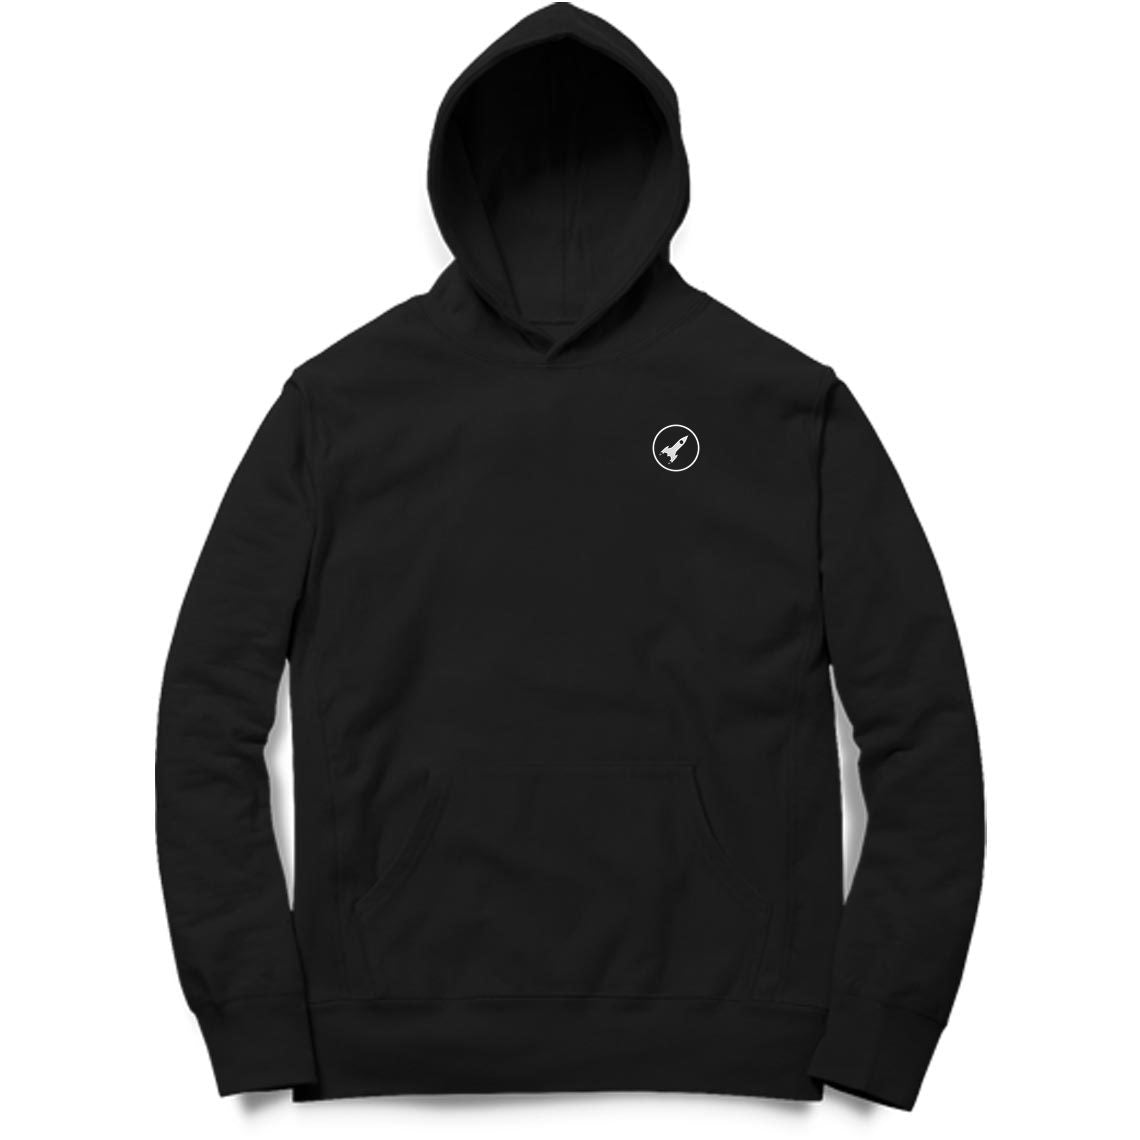 Clarity is Power Hoodies for Men